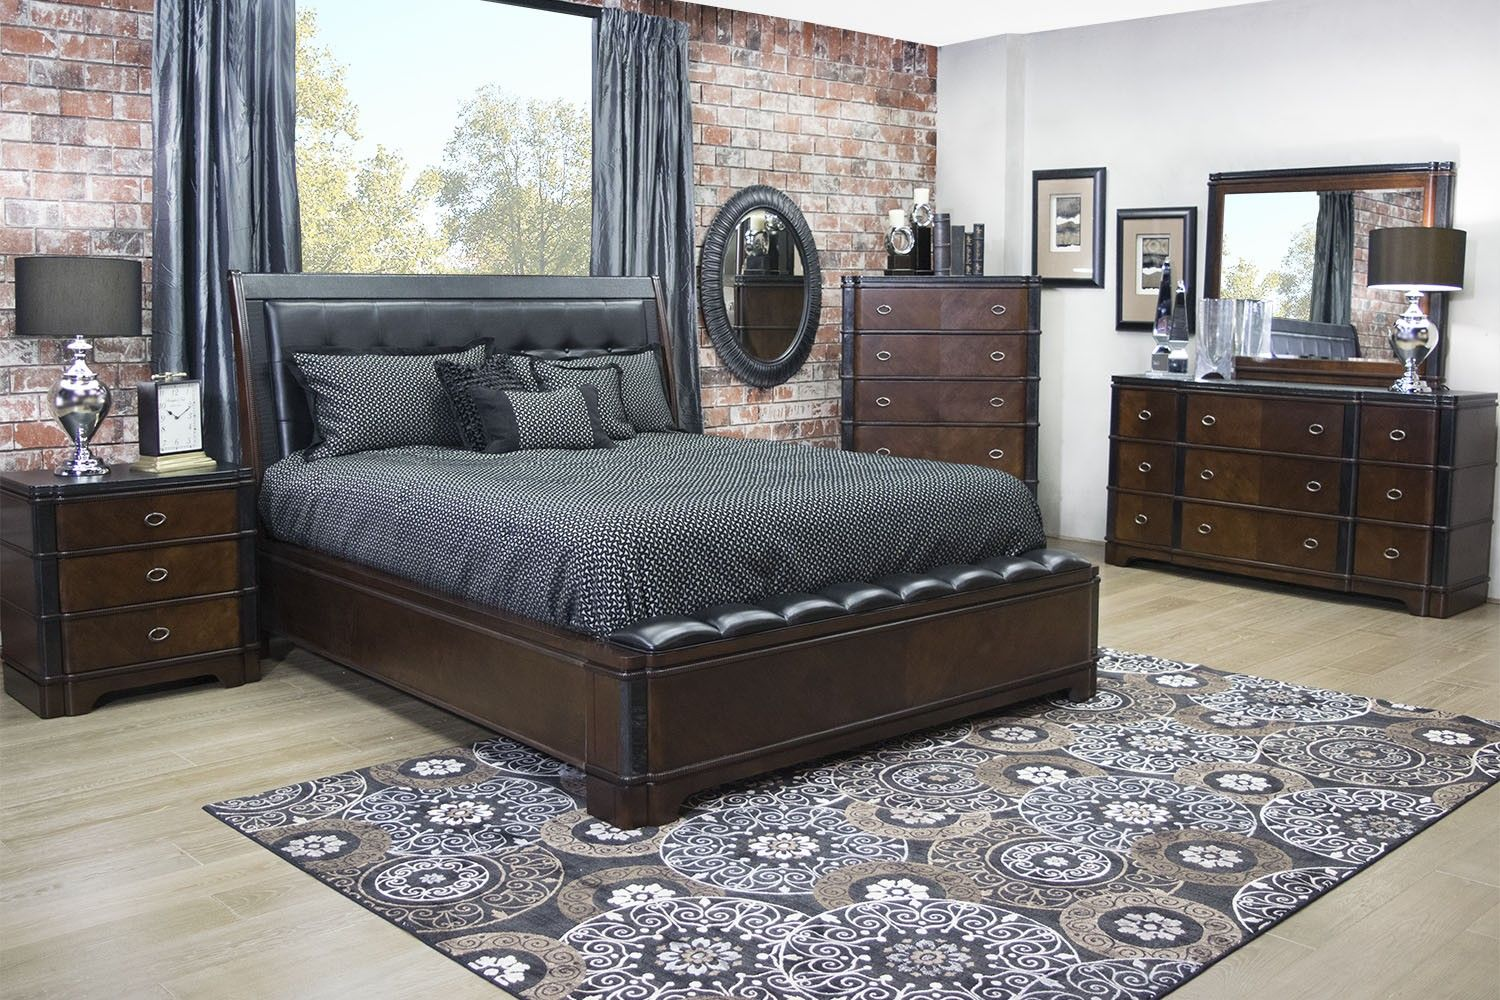 Mor Furniture For Less The Dundee Bedroom Mor Furniture For